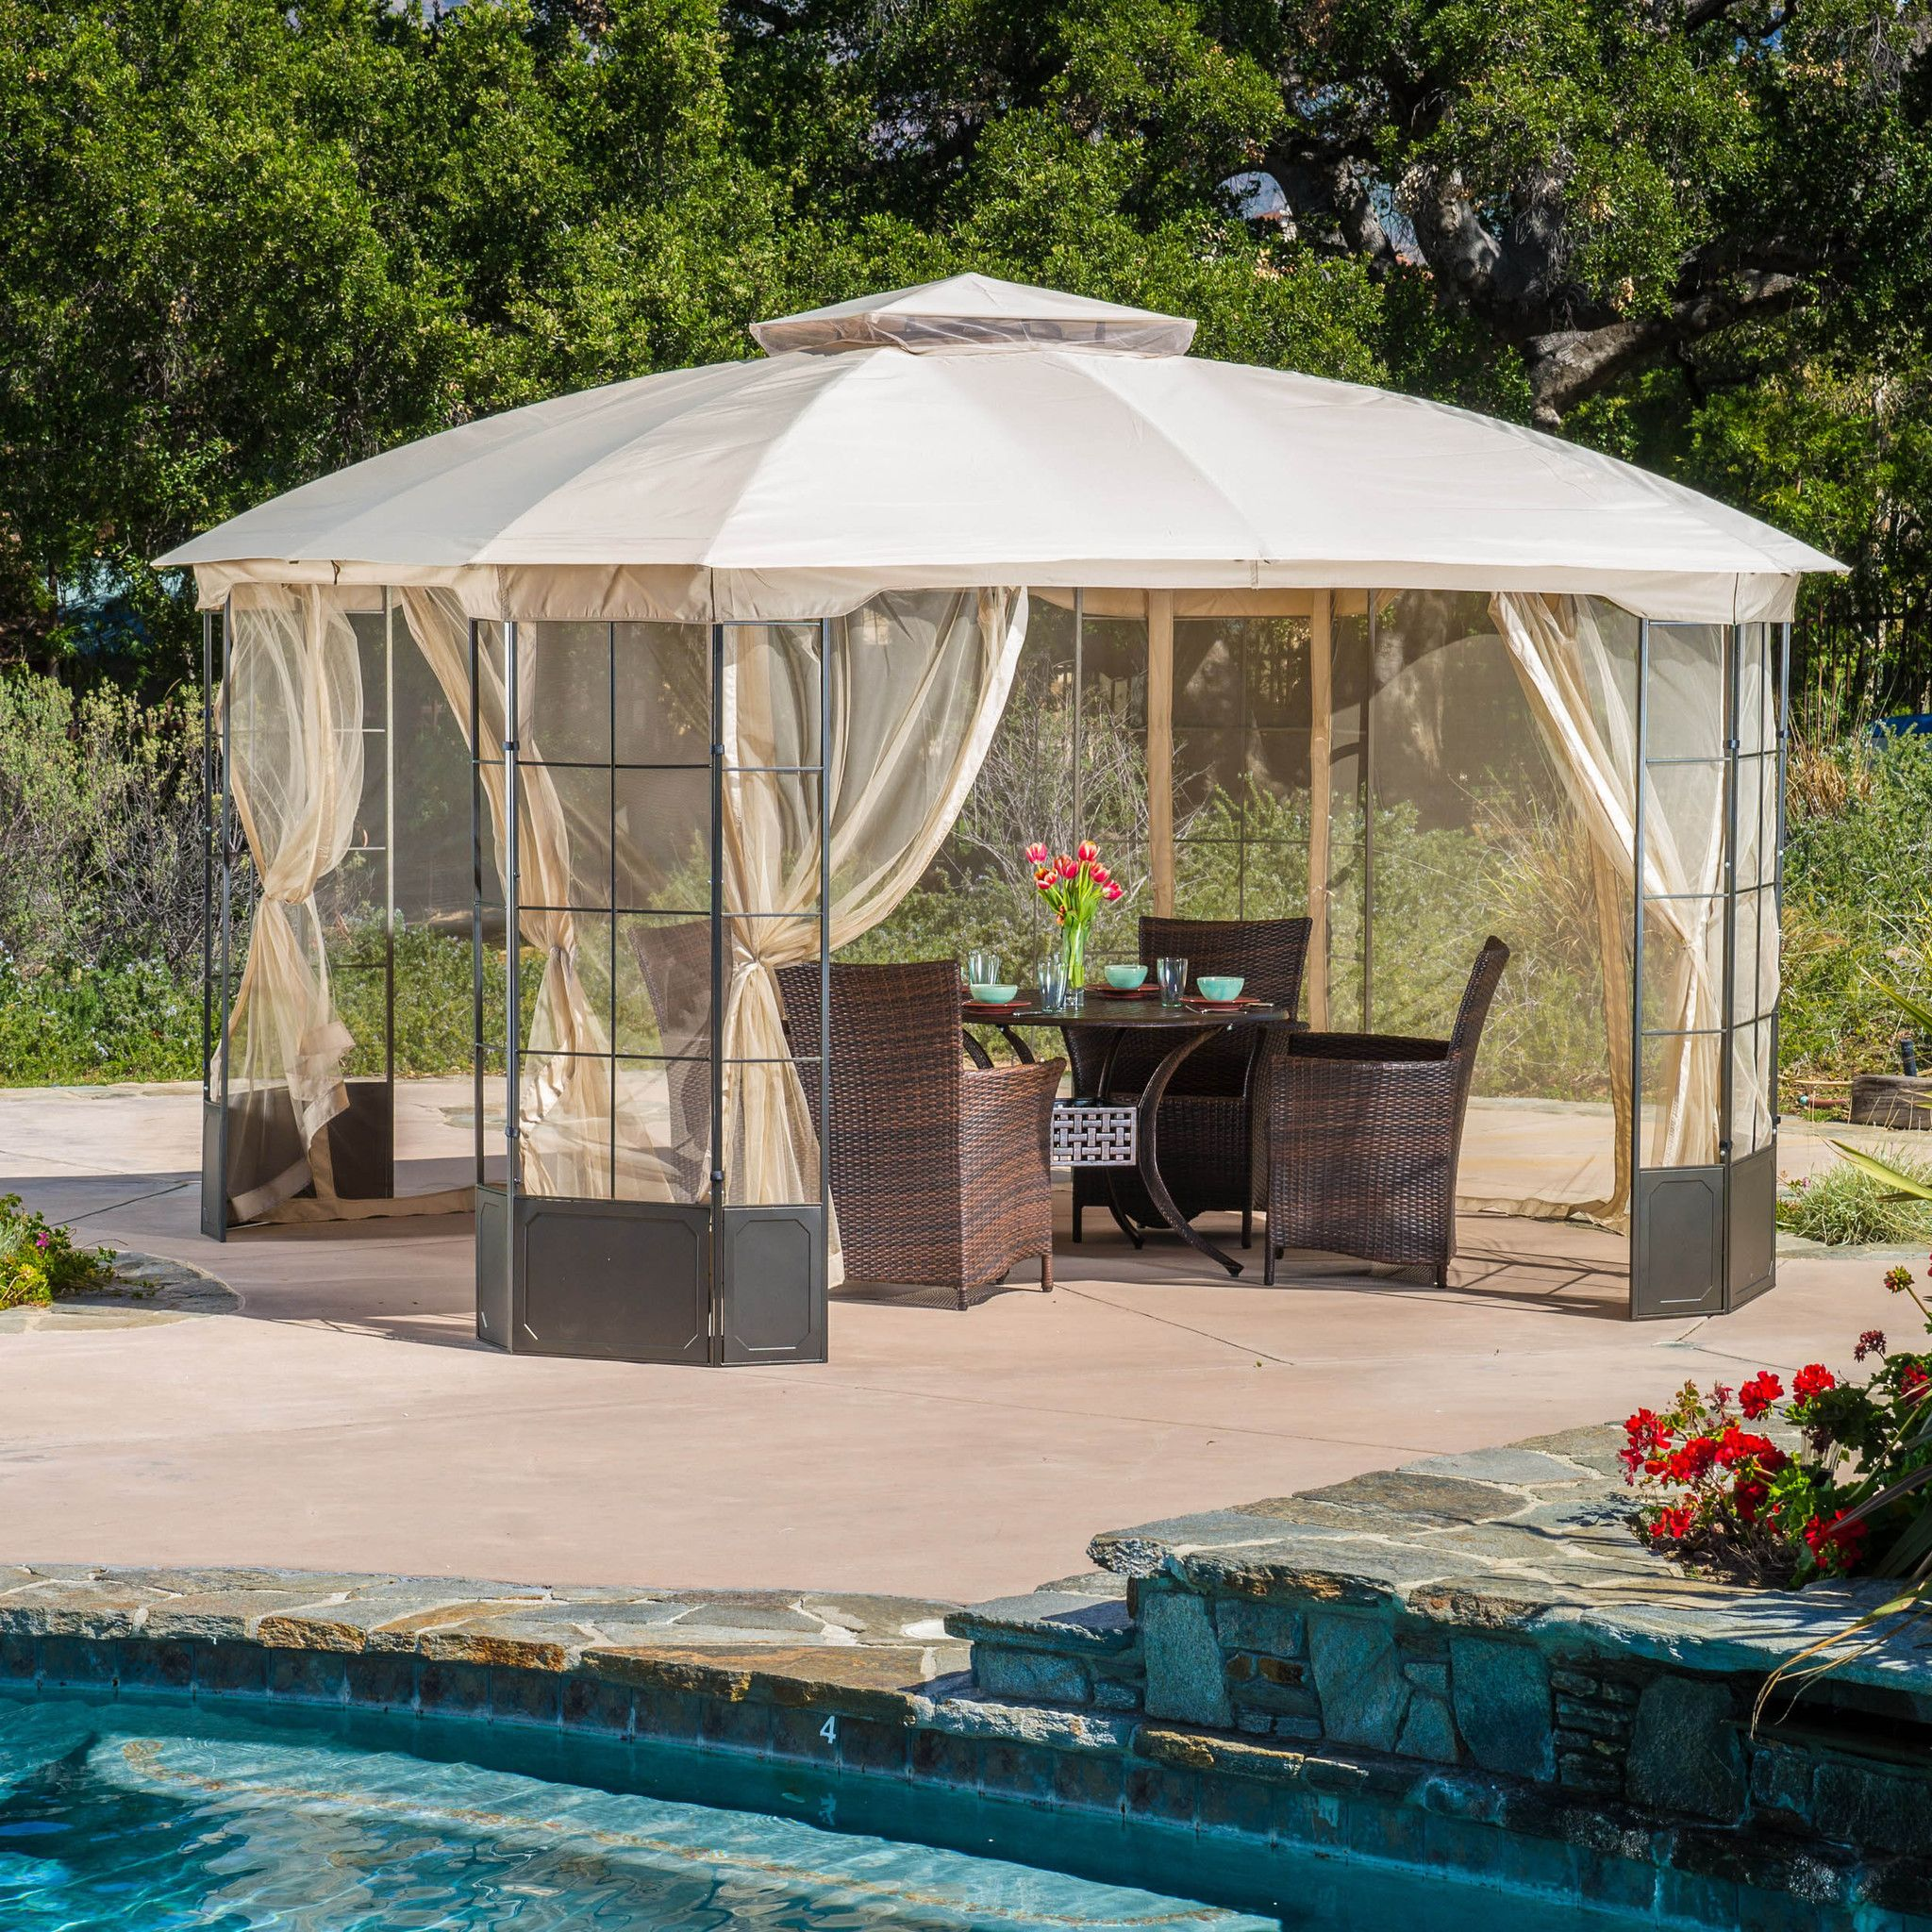 Somerset Outdoor Steel Gazebo Canopy w/ Tan Cover & Somerset Outdoor Steel Gazebo Canopy w/ Tan Cover | Steel gazebo ...